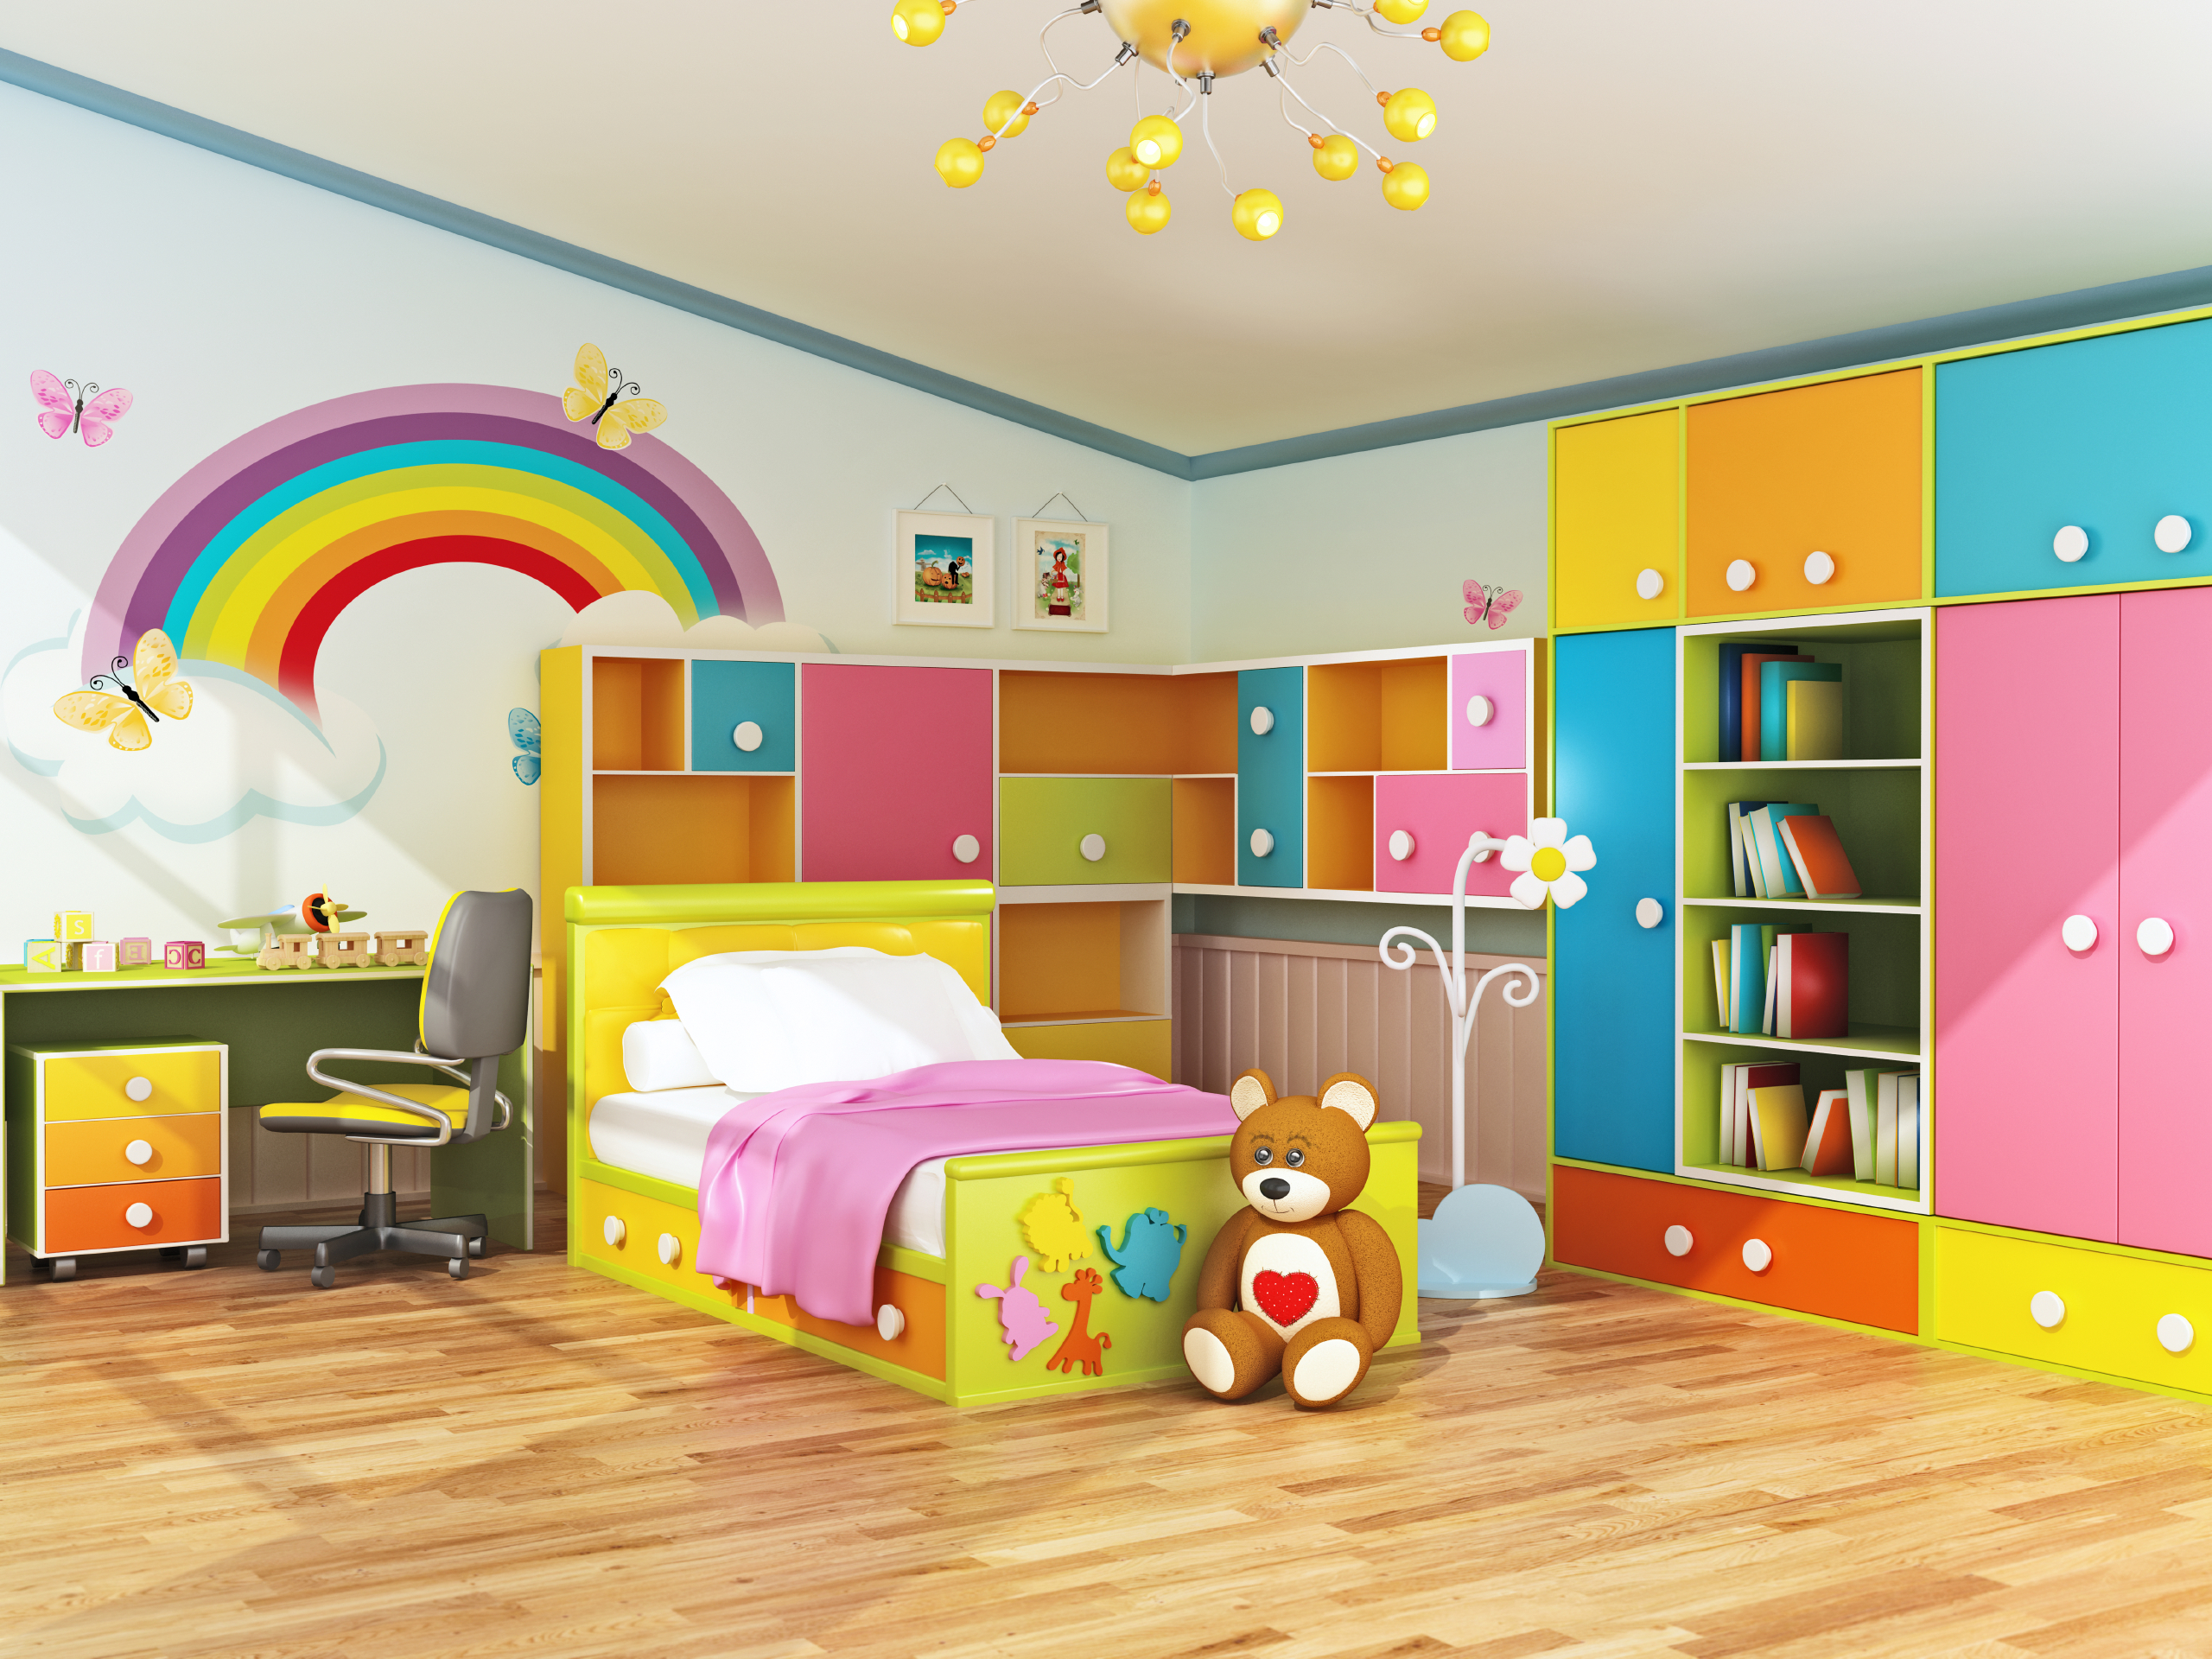 Plan Ahead When Decorating Kids Bedrooms Rismedia S